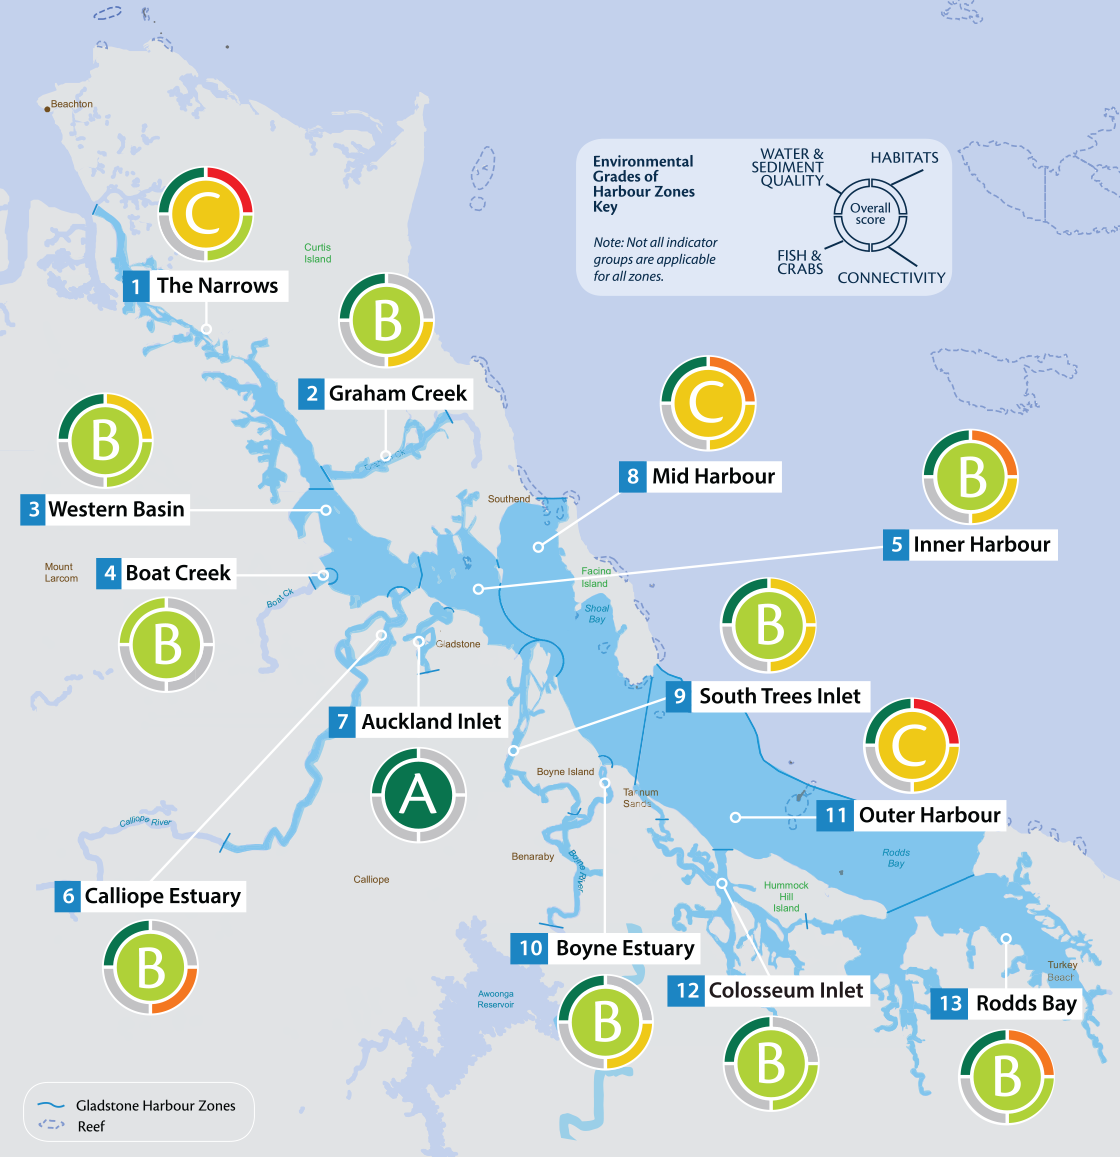 Environmental Grades of Harbour Zones